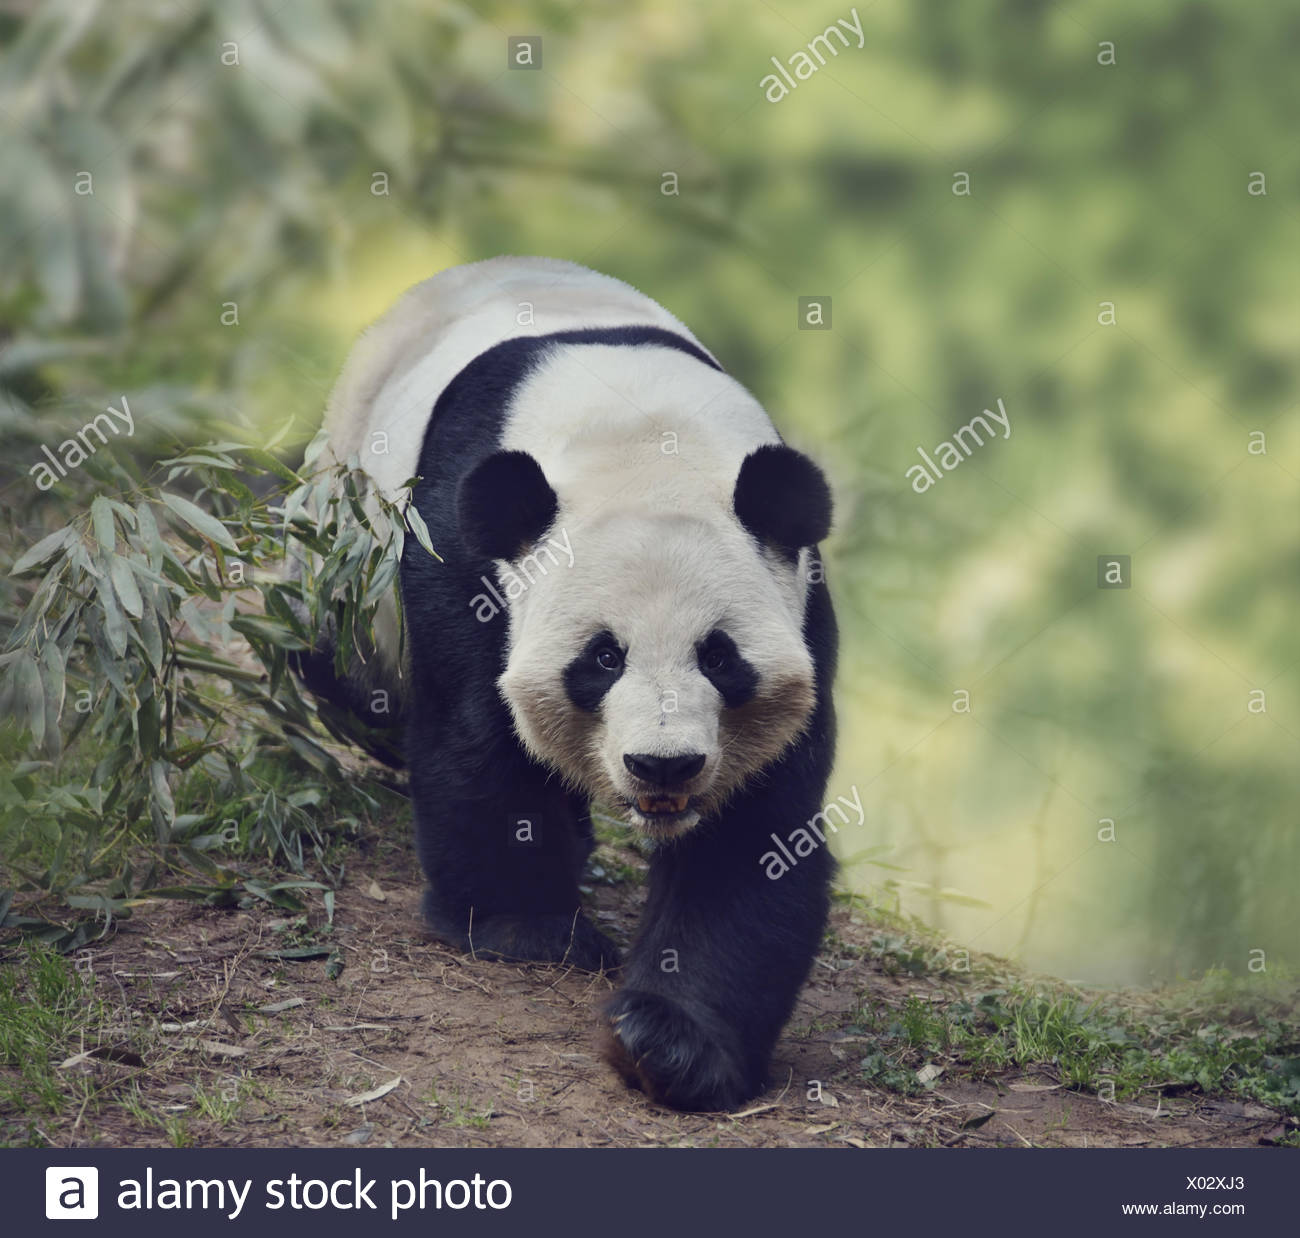 Giant Panda Bear Stock Photo